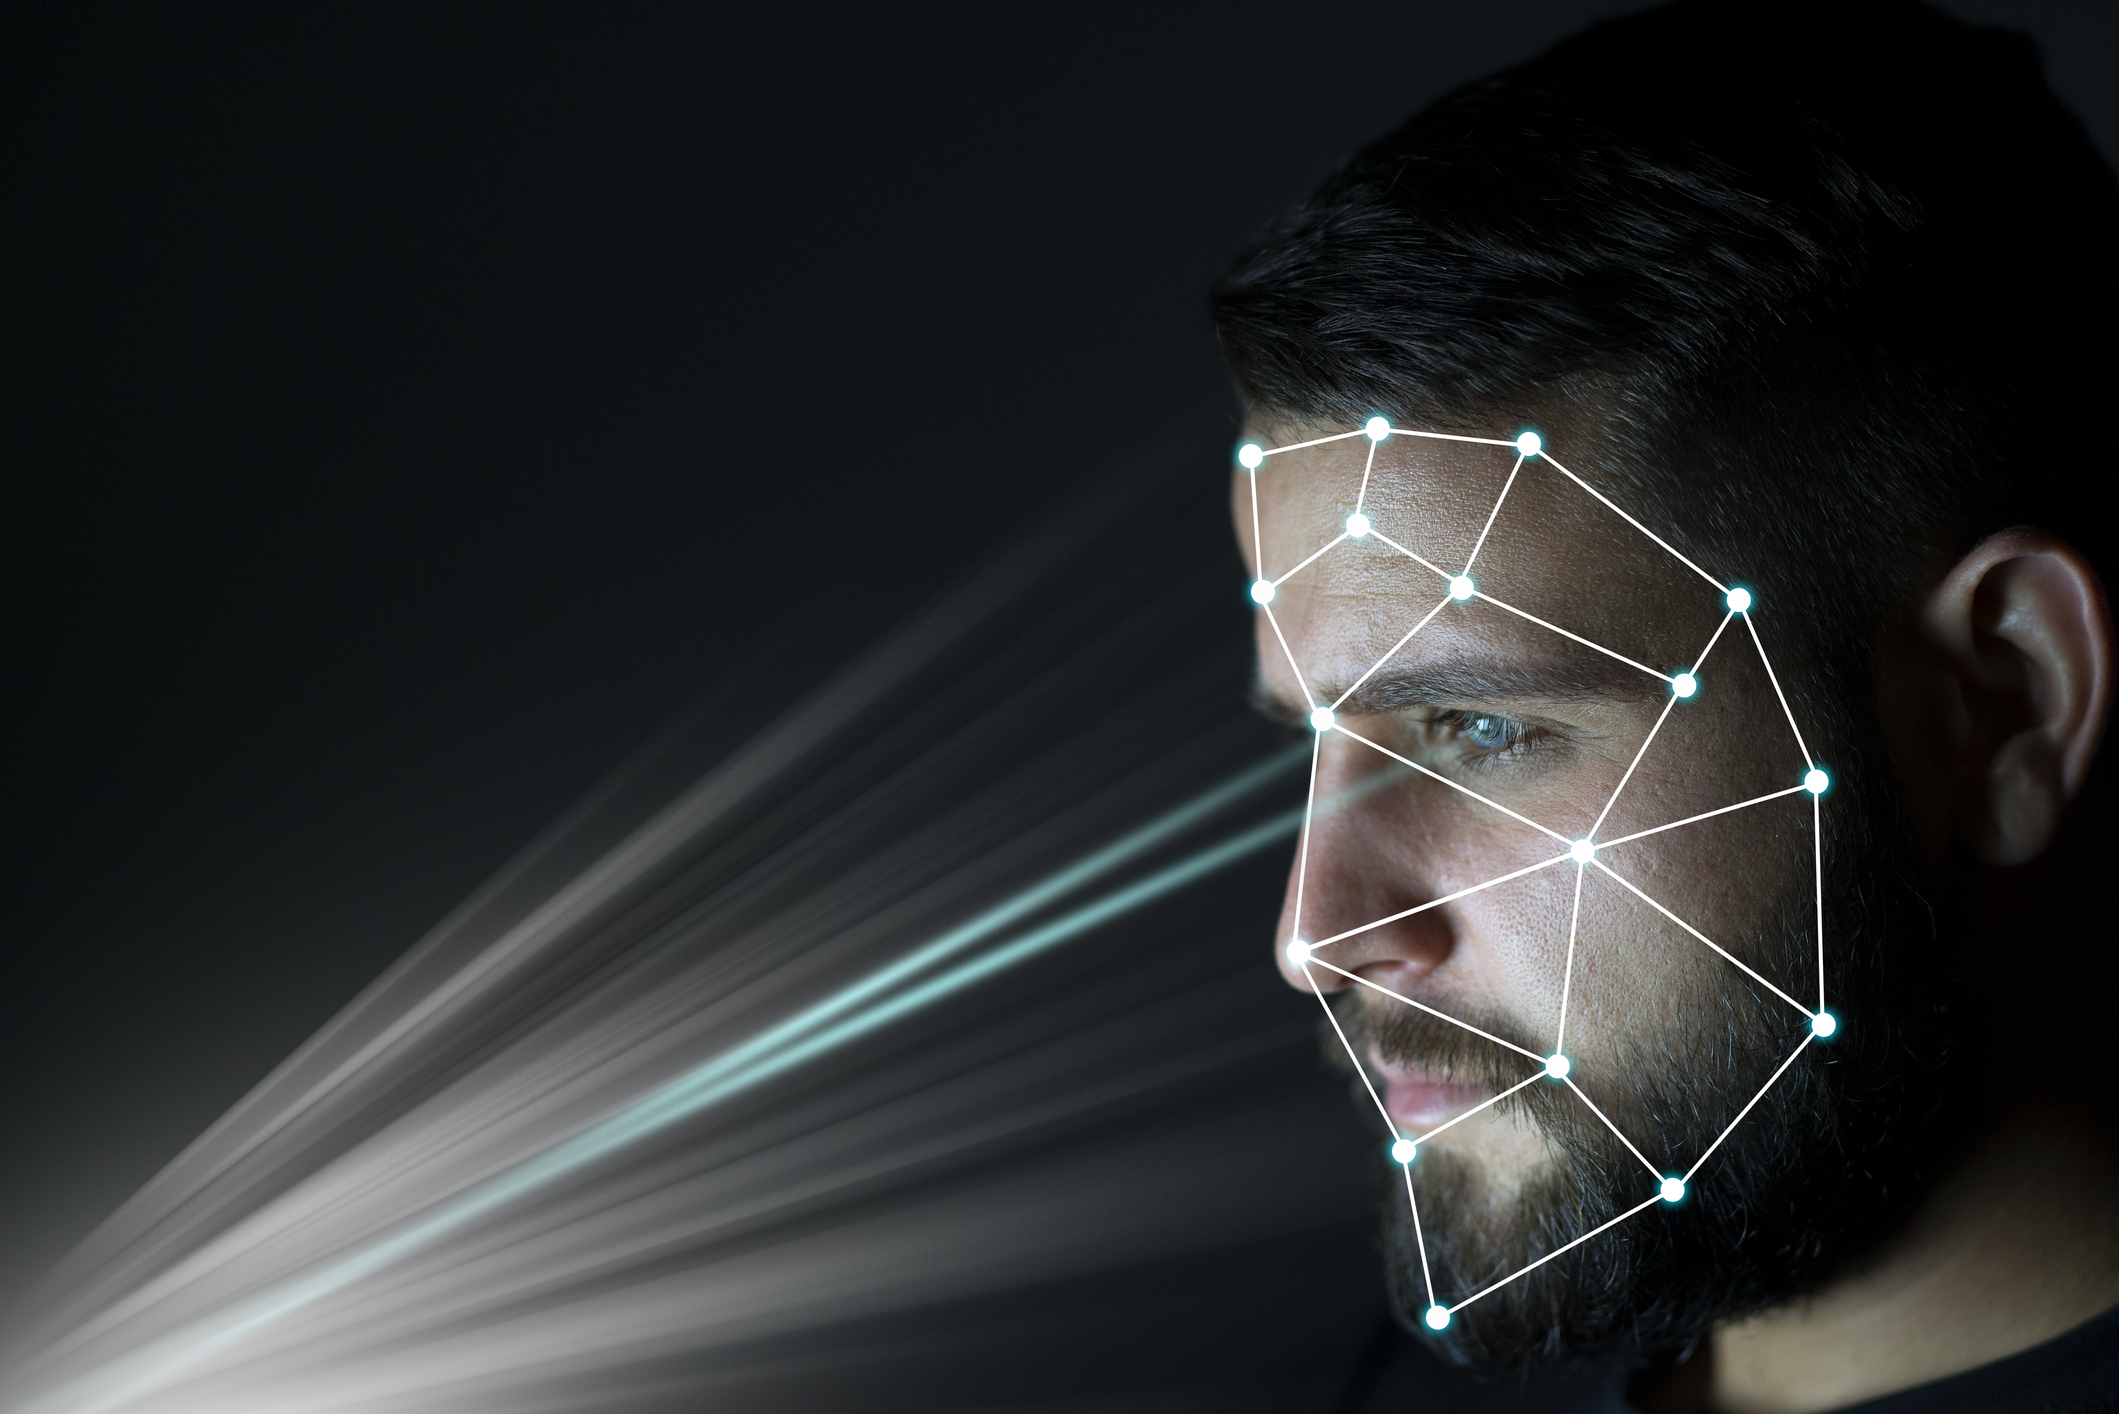 Biometric identification and verification face detection concept. Facial recognition system. Unlocking technology.